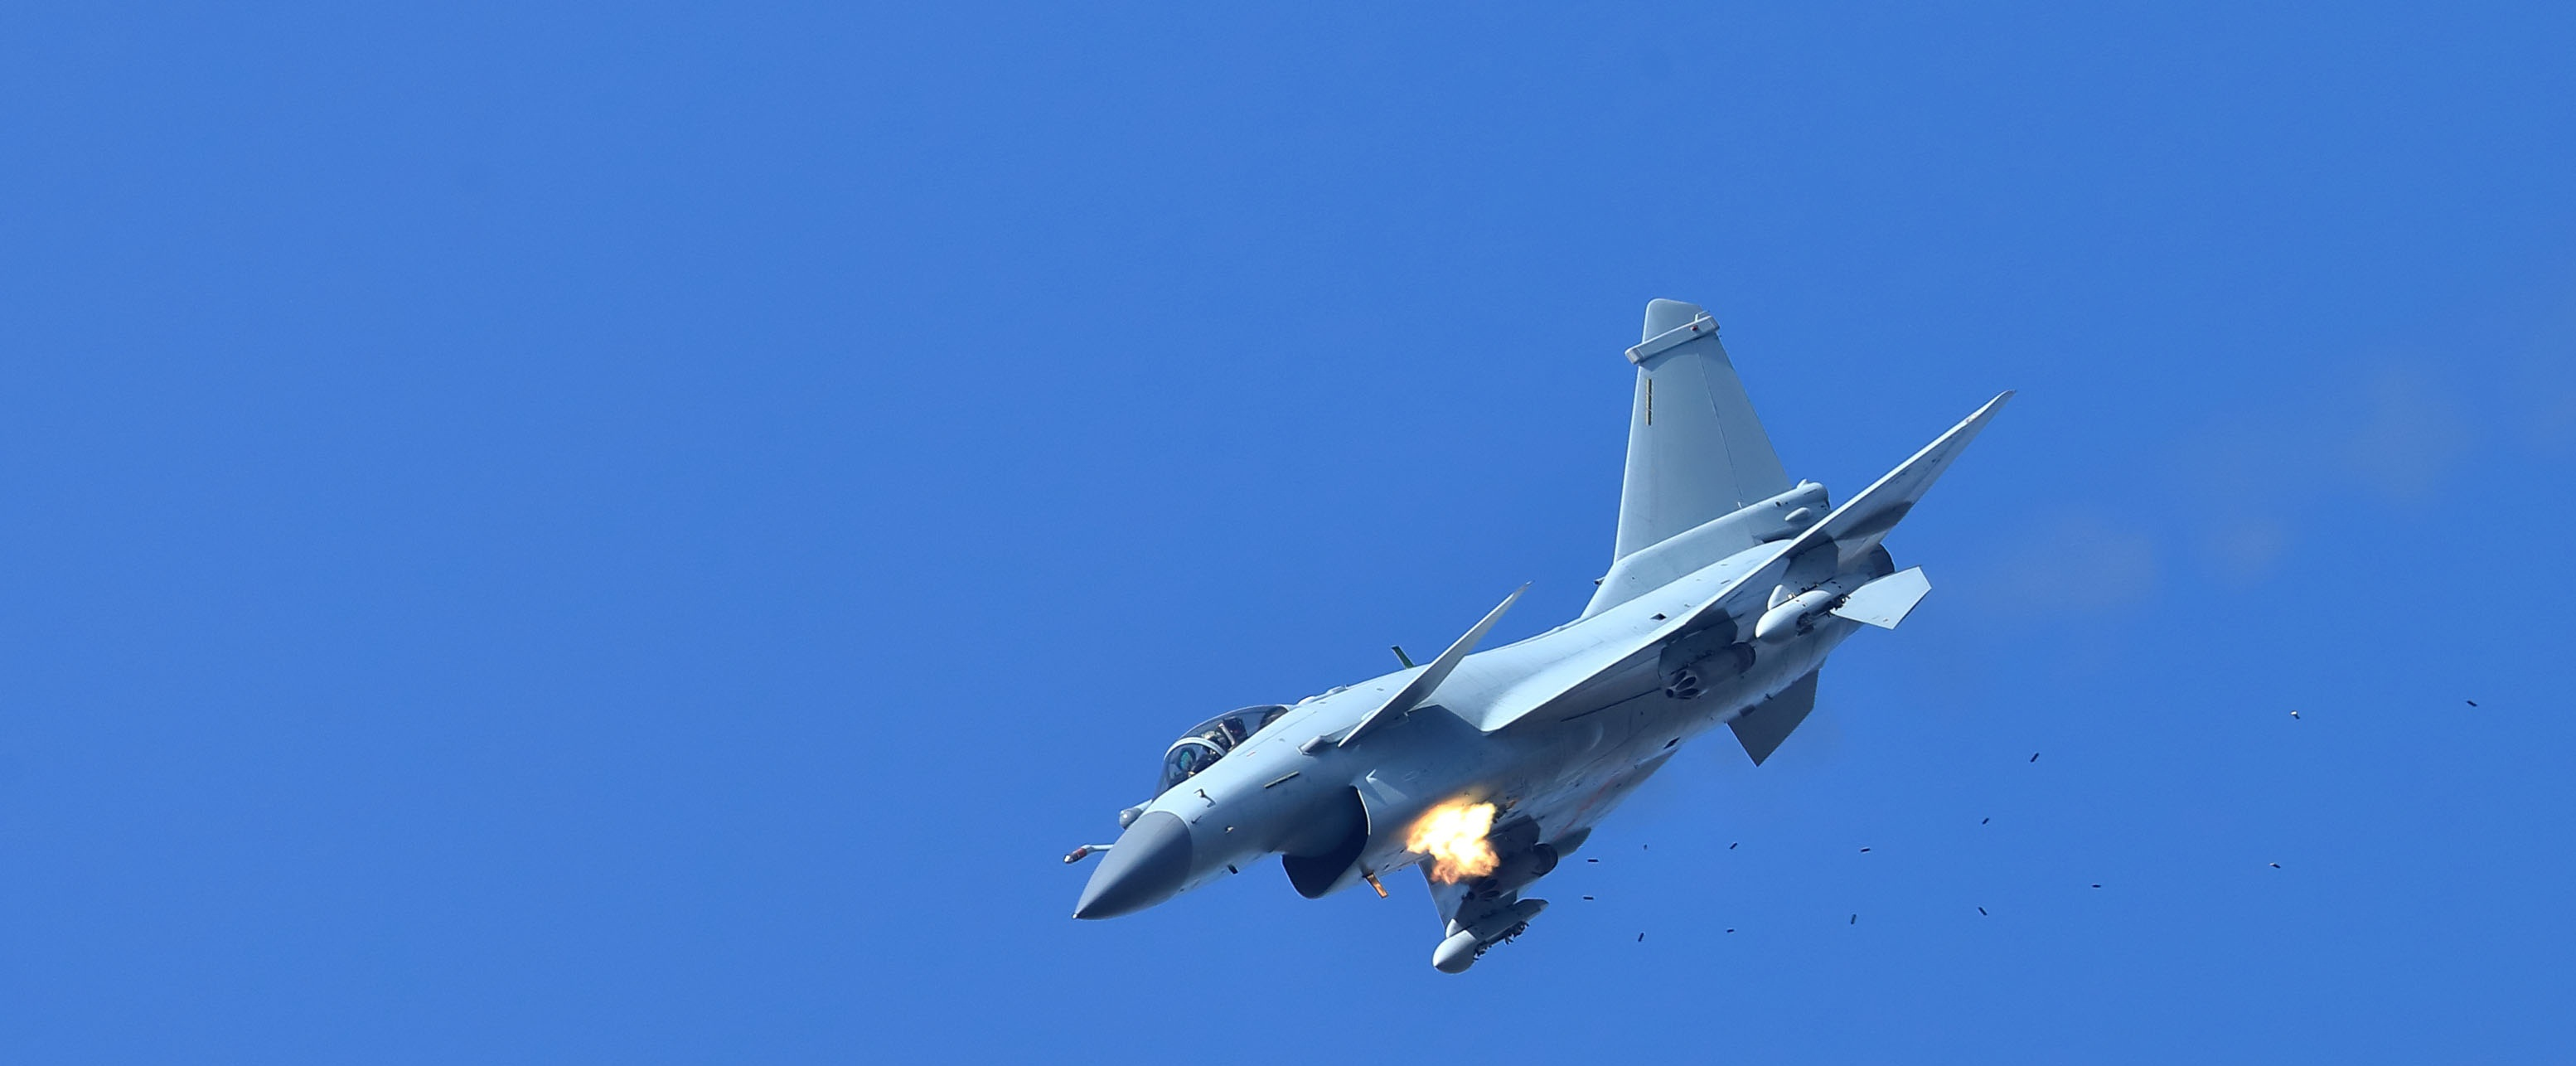 J-10 fighter jets fly during training